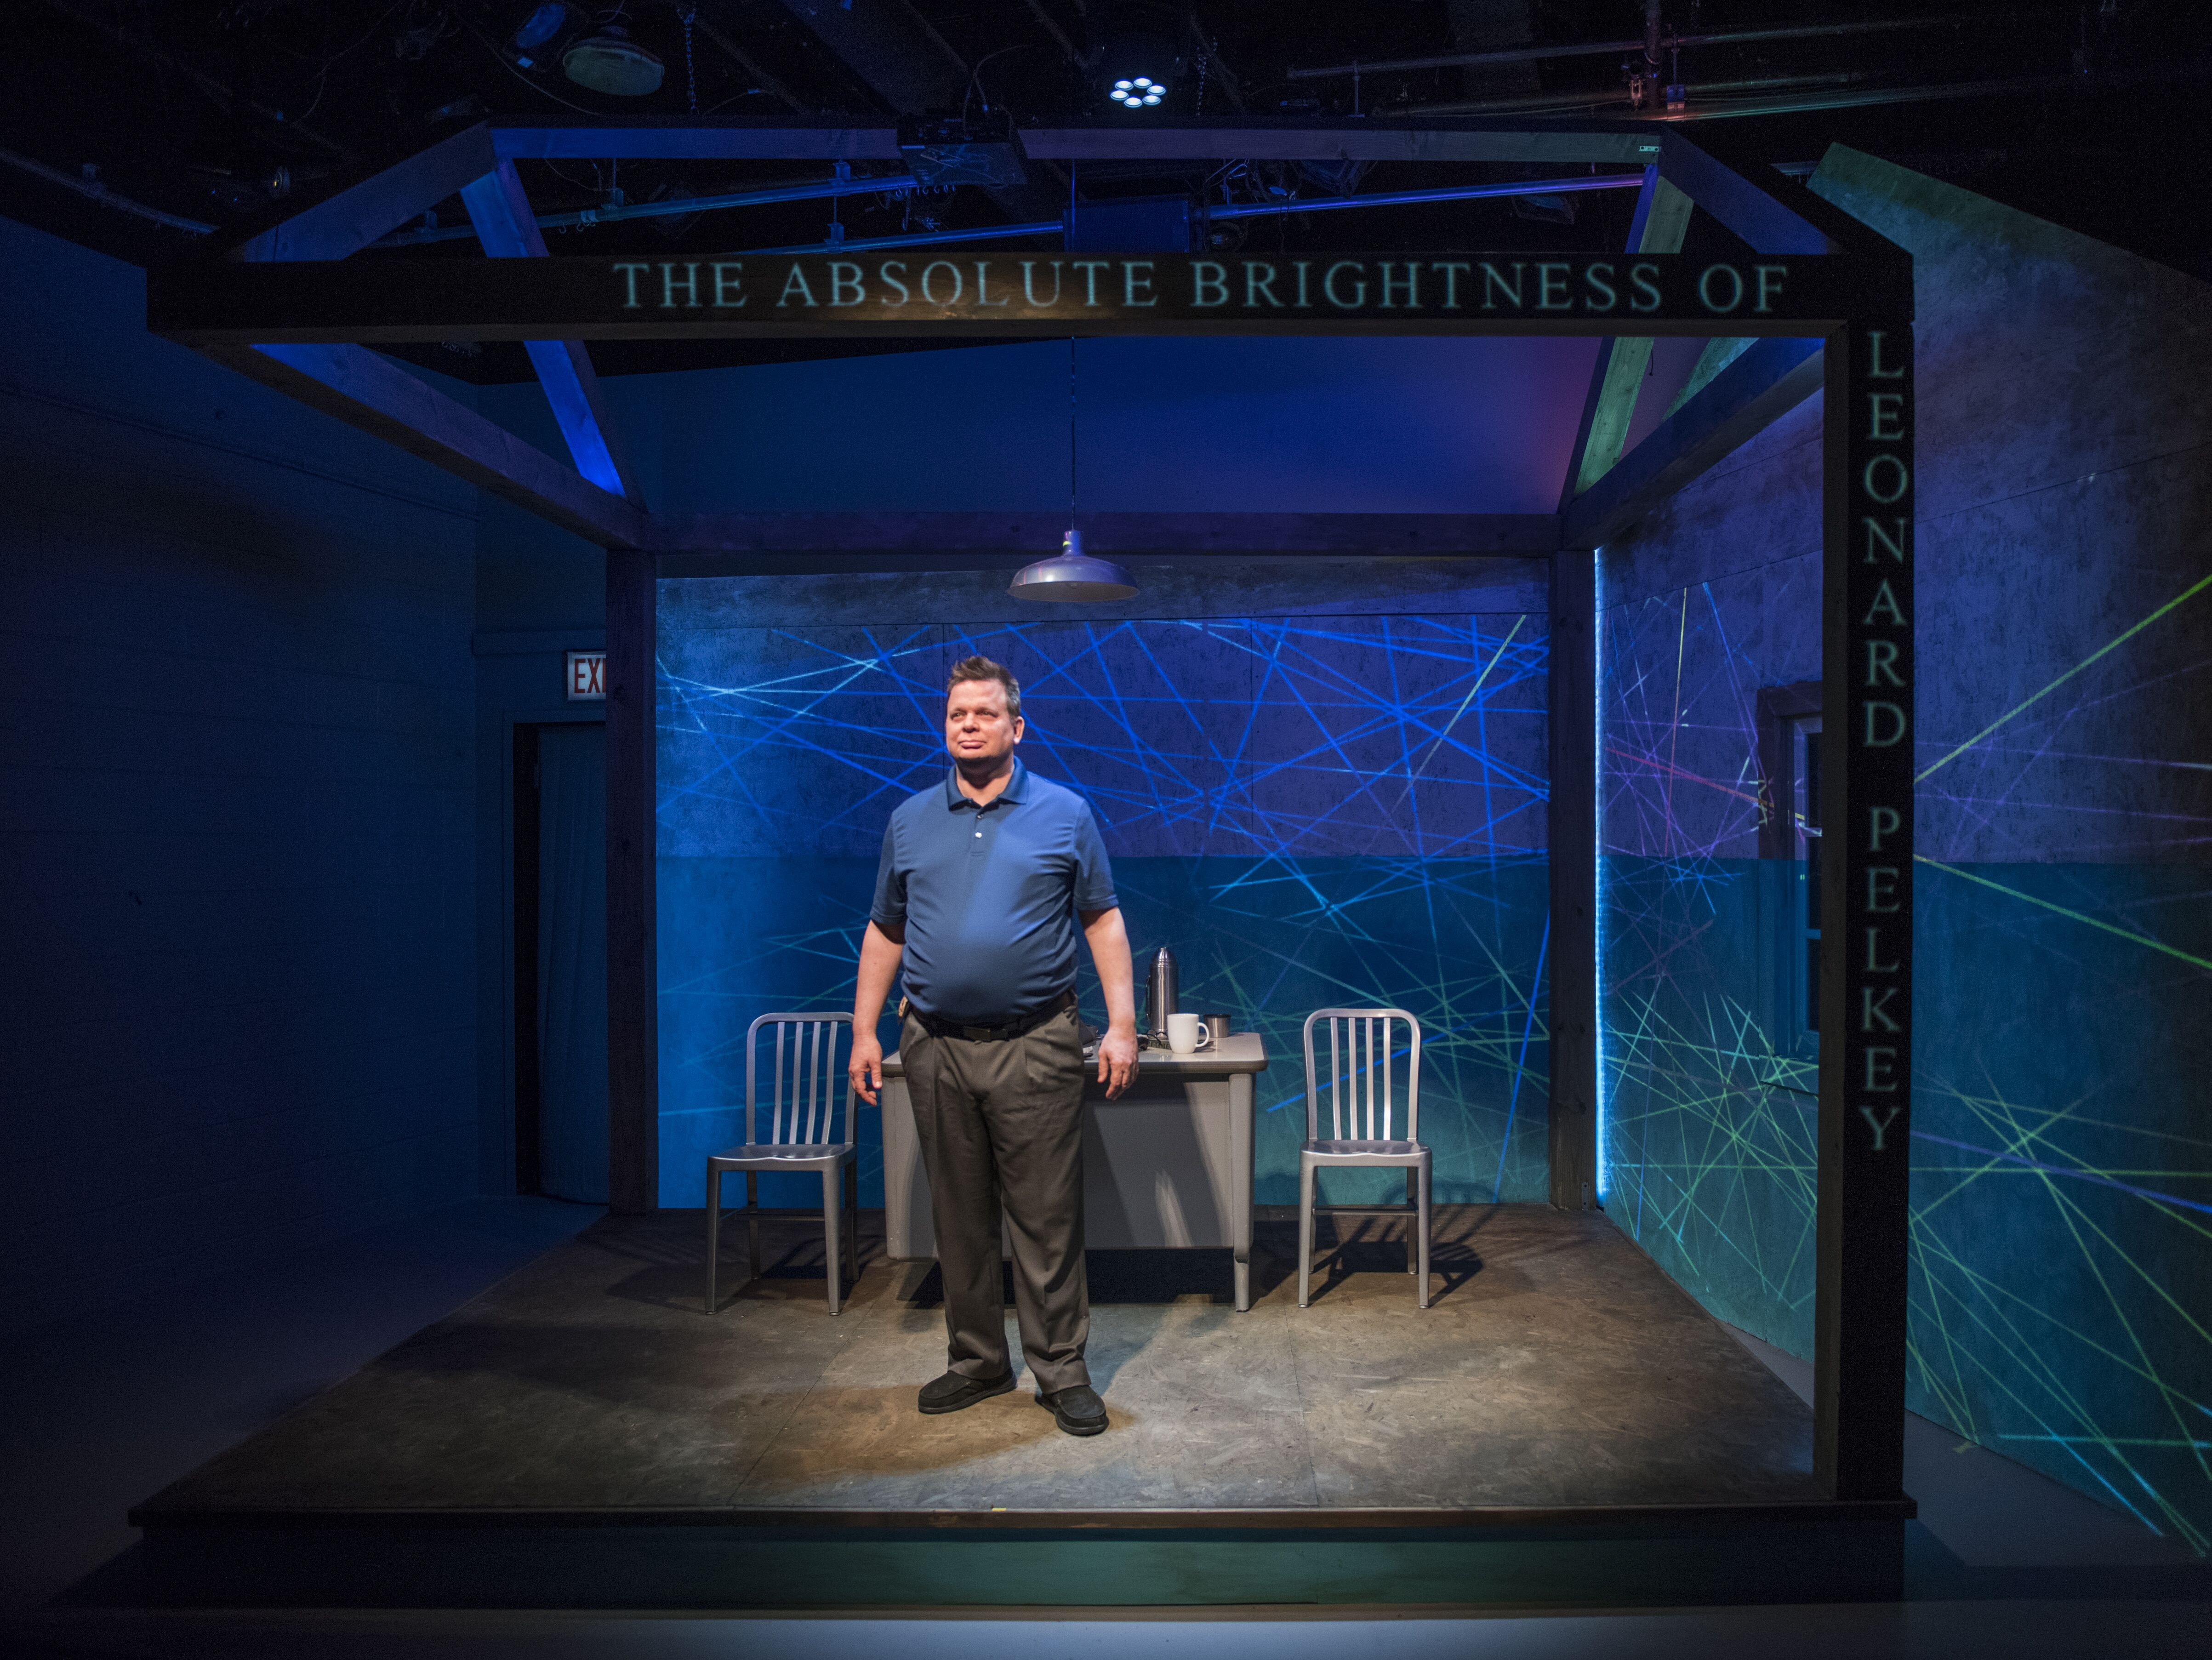 The Absolute Brightness of Leonard Pelkey, American Blues Theater